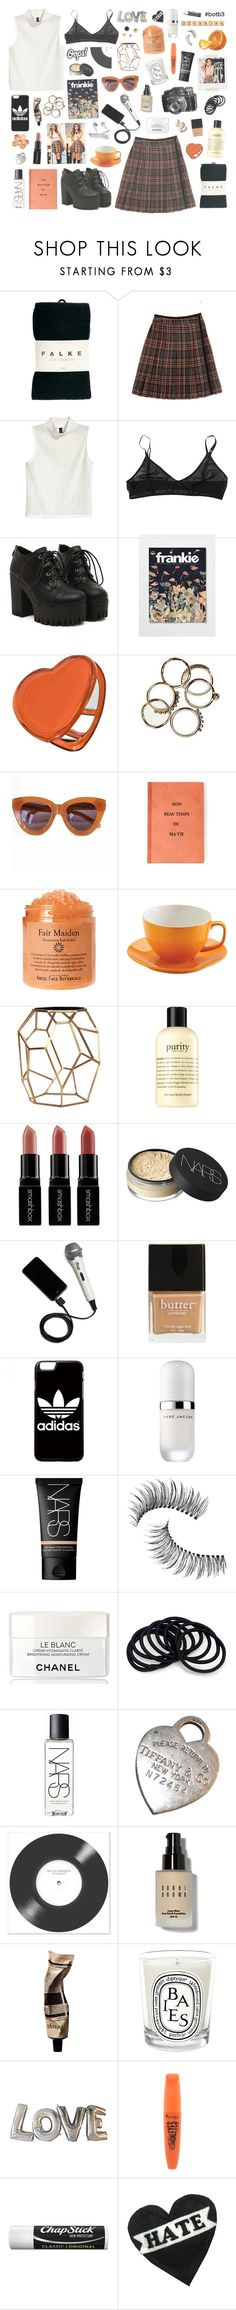 """♡ caught up in my emotions."" by etoilesdanse ❤ liked on Polyvore featuring Falke, Steven Alan, H&M, North, Dotti, Karen Walker, Price & Kensington, Emporium Home, philosophy and Smashbox"